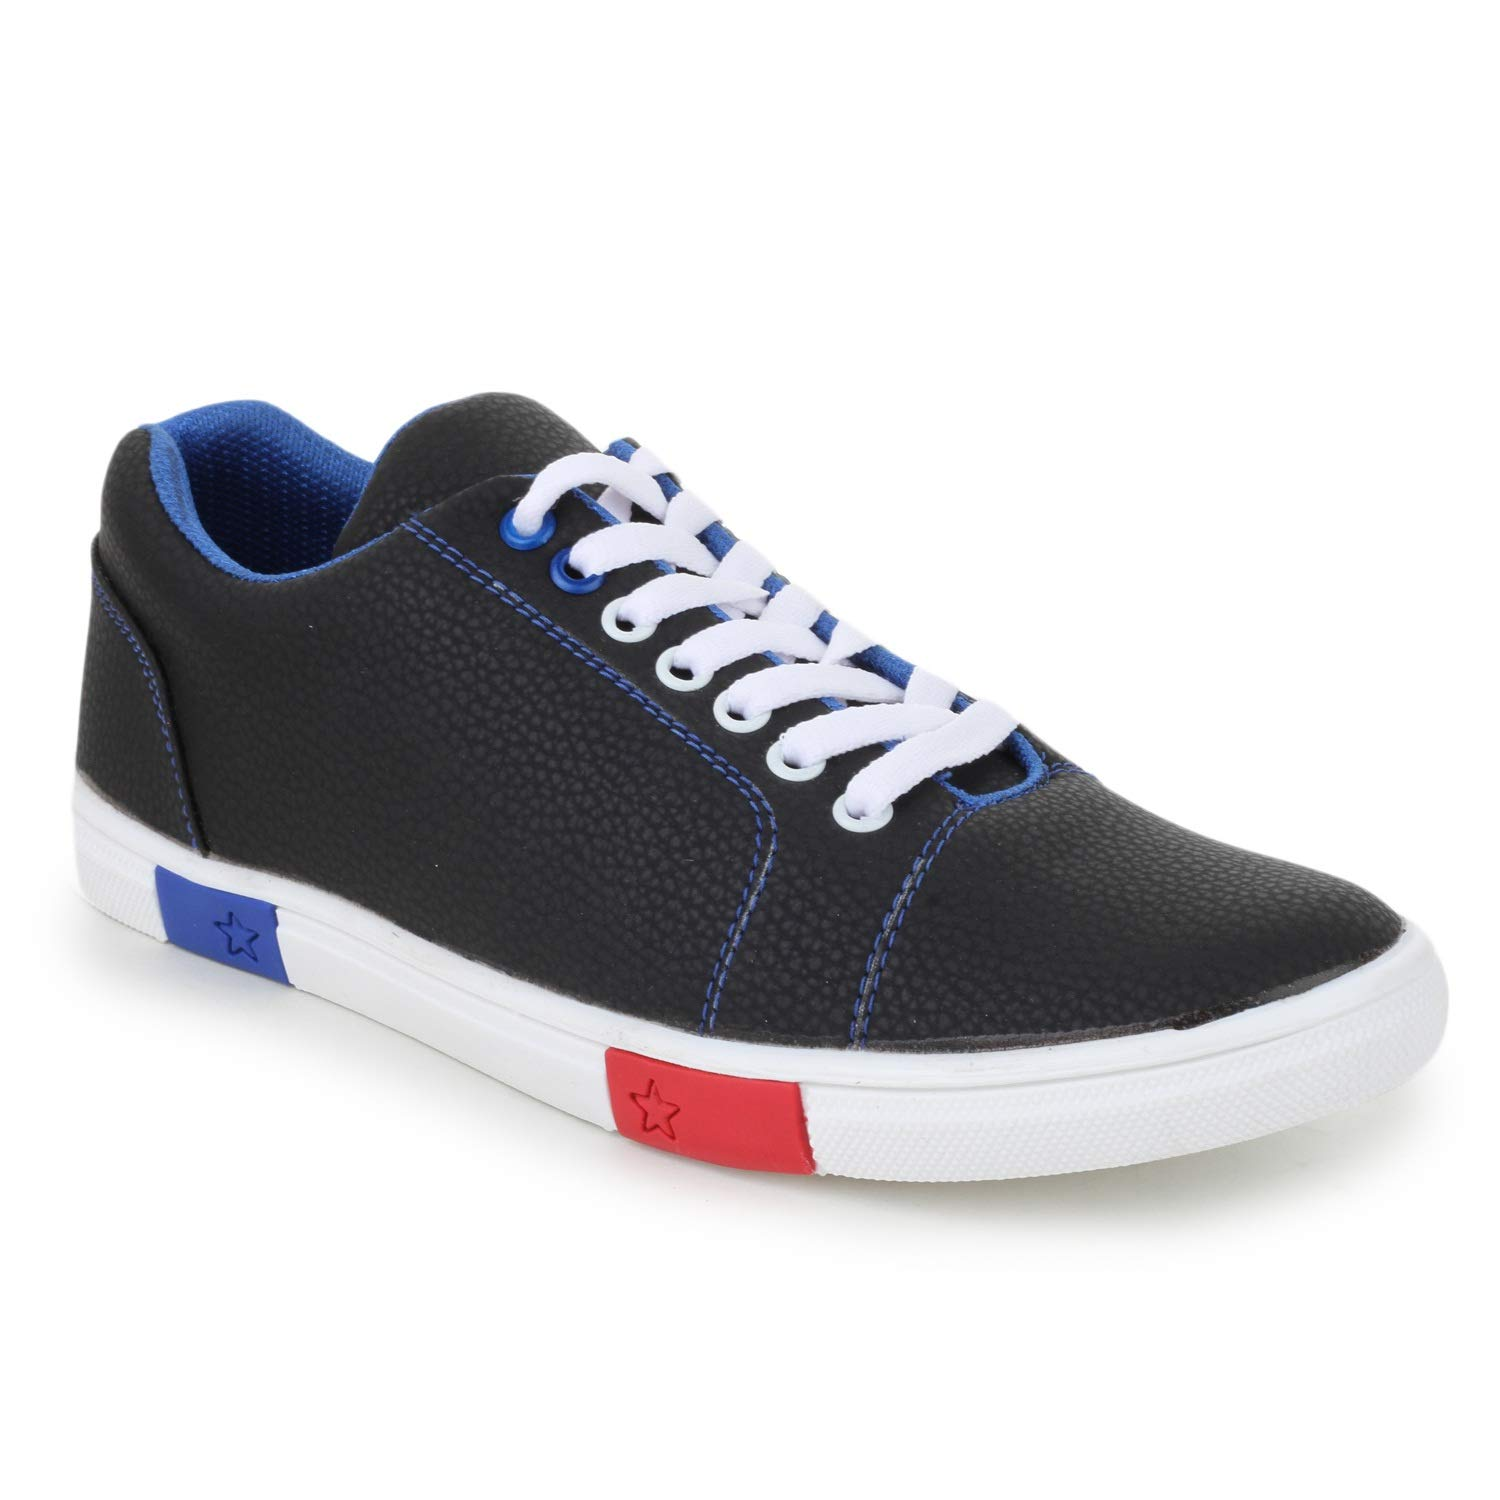 DICY Canvas Sneakers for Men Shoes Boys